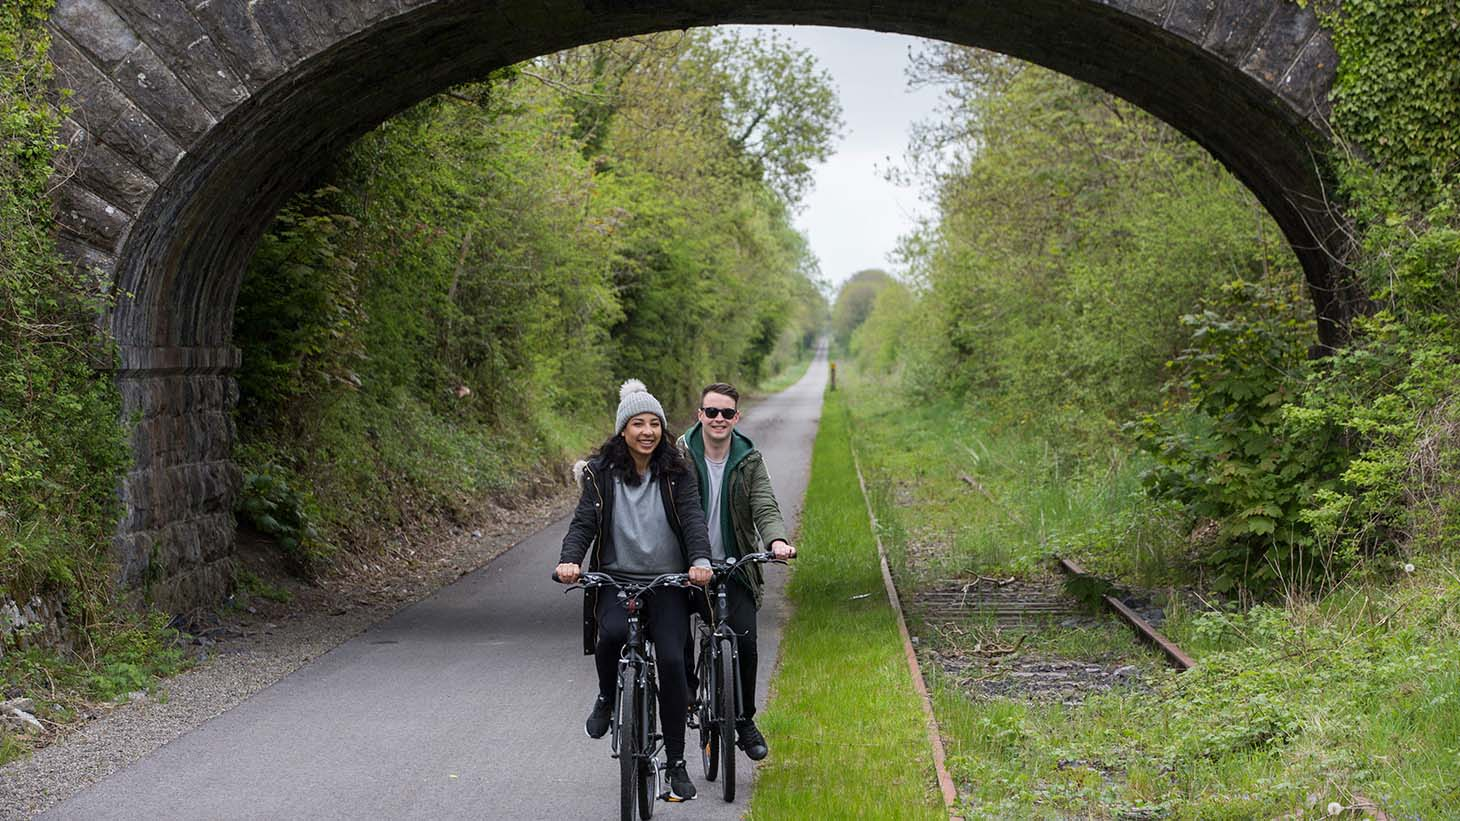 Exploring the Old Rail Trail Greenway by bike